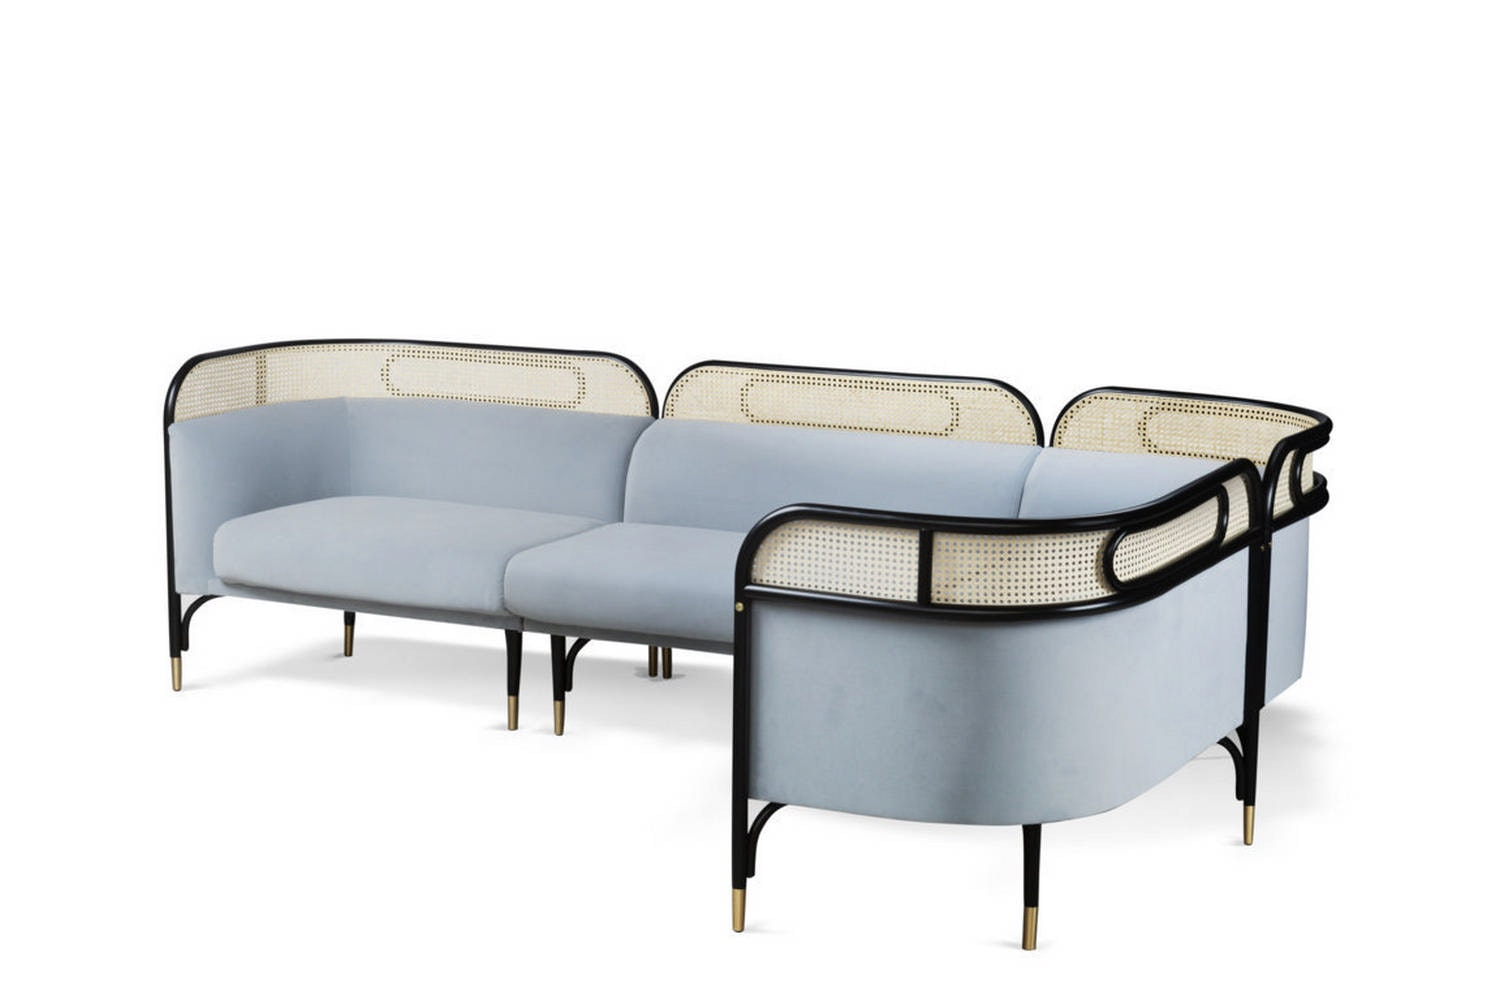 Targa Modular Sofa by GamFratesi for Gebruder Thonet Vienna GmbH